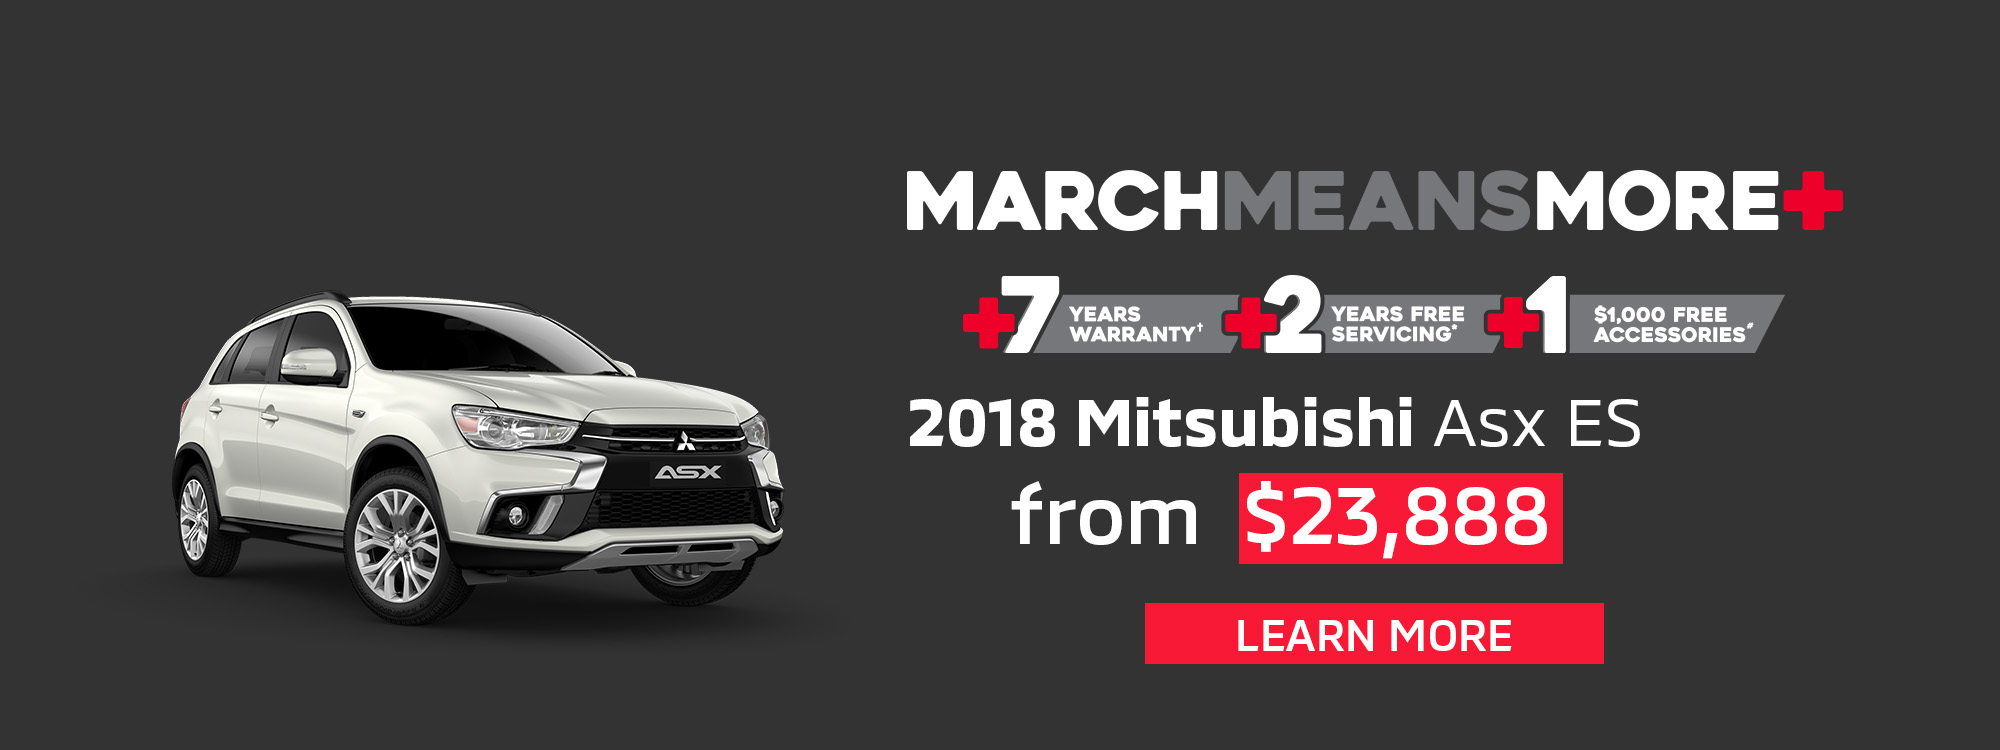 banner-marchmore-750x-march2019_ASX_CAPALABA